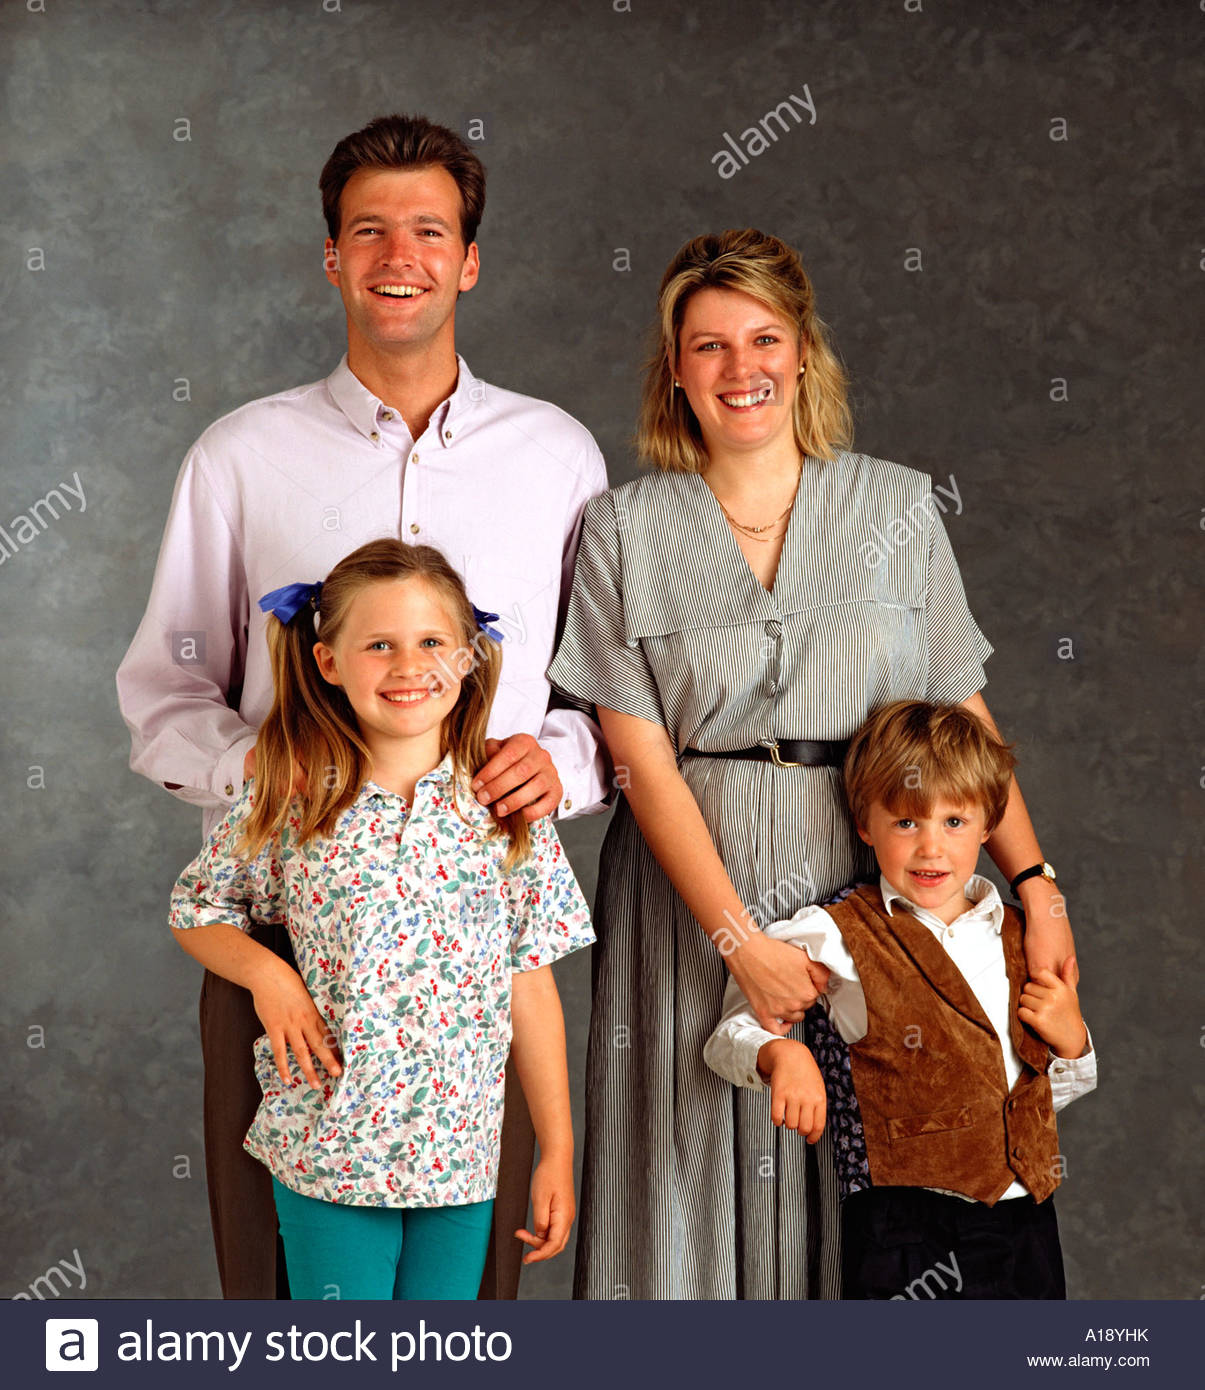 White Middle Class Nuclear Family Posing For Studio Photo